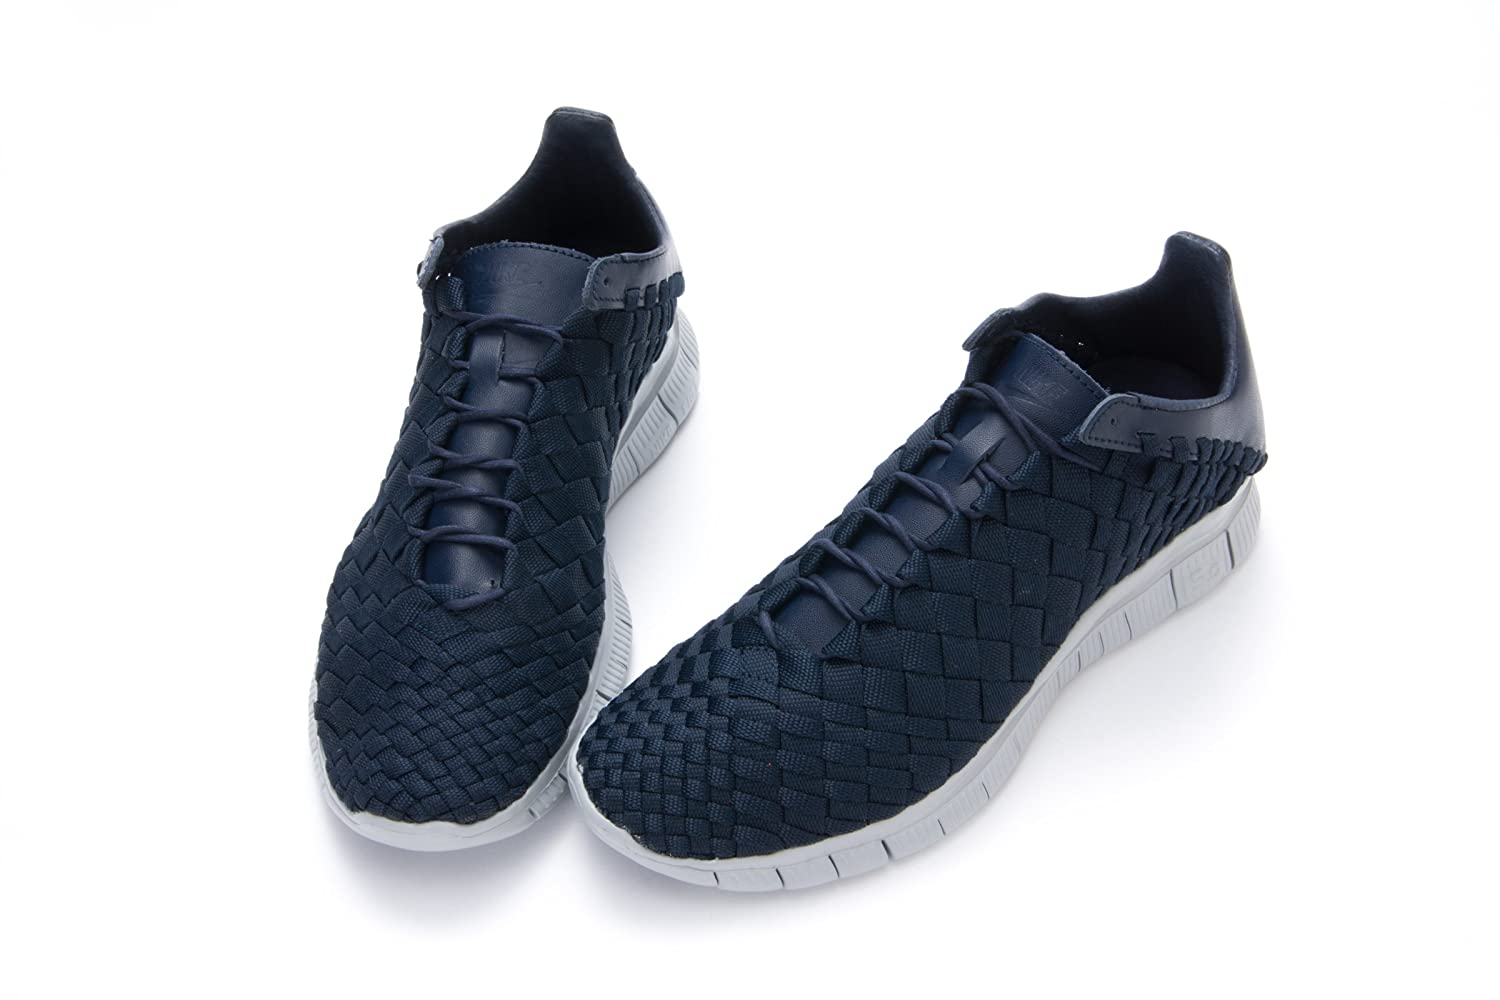 c9cc088ff623 Amazon.com  NIKE Free Inneva Woven SP Casual Shoes Sneakers 598384-441 (US  11)  Shoes